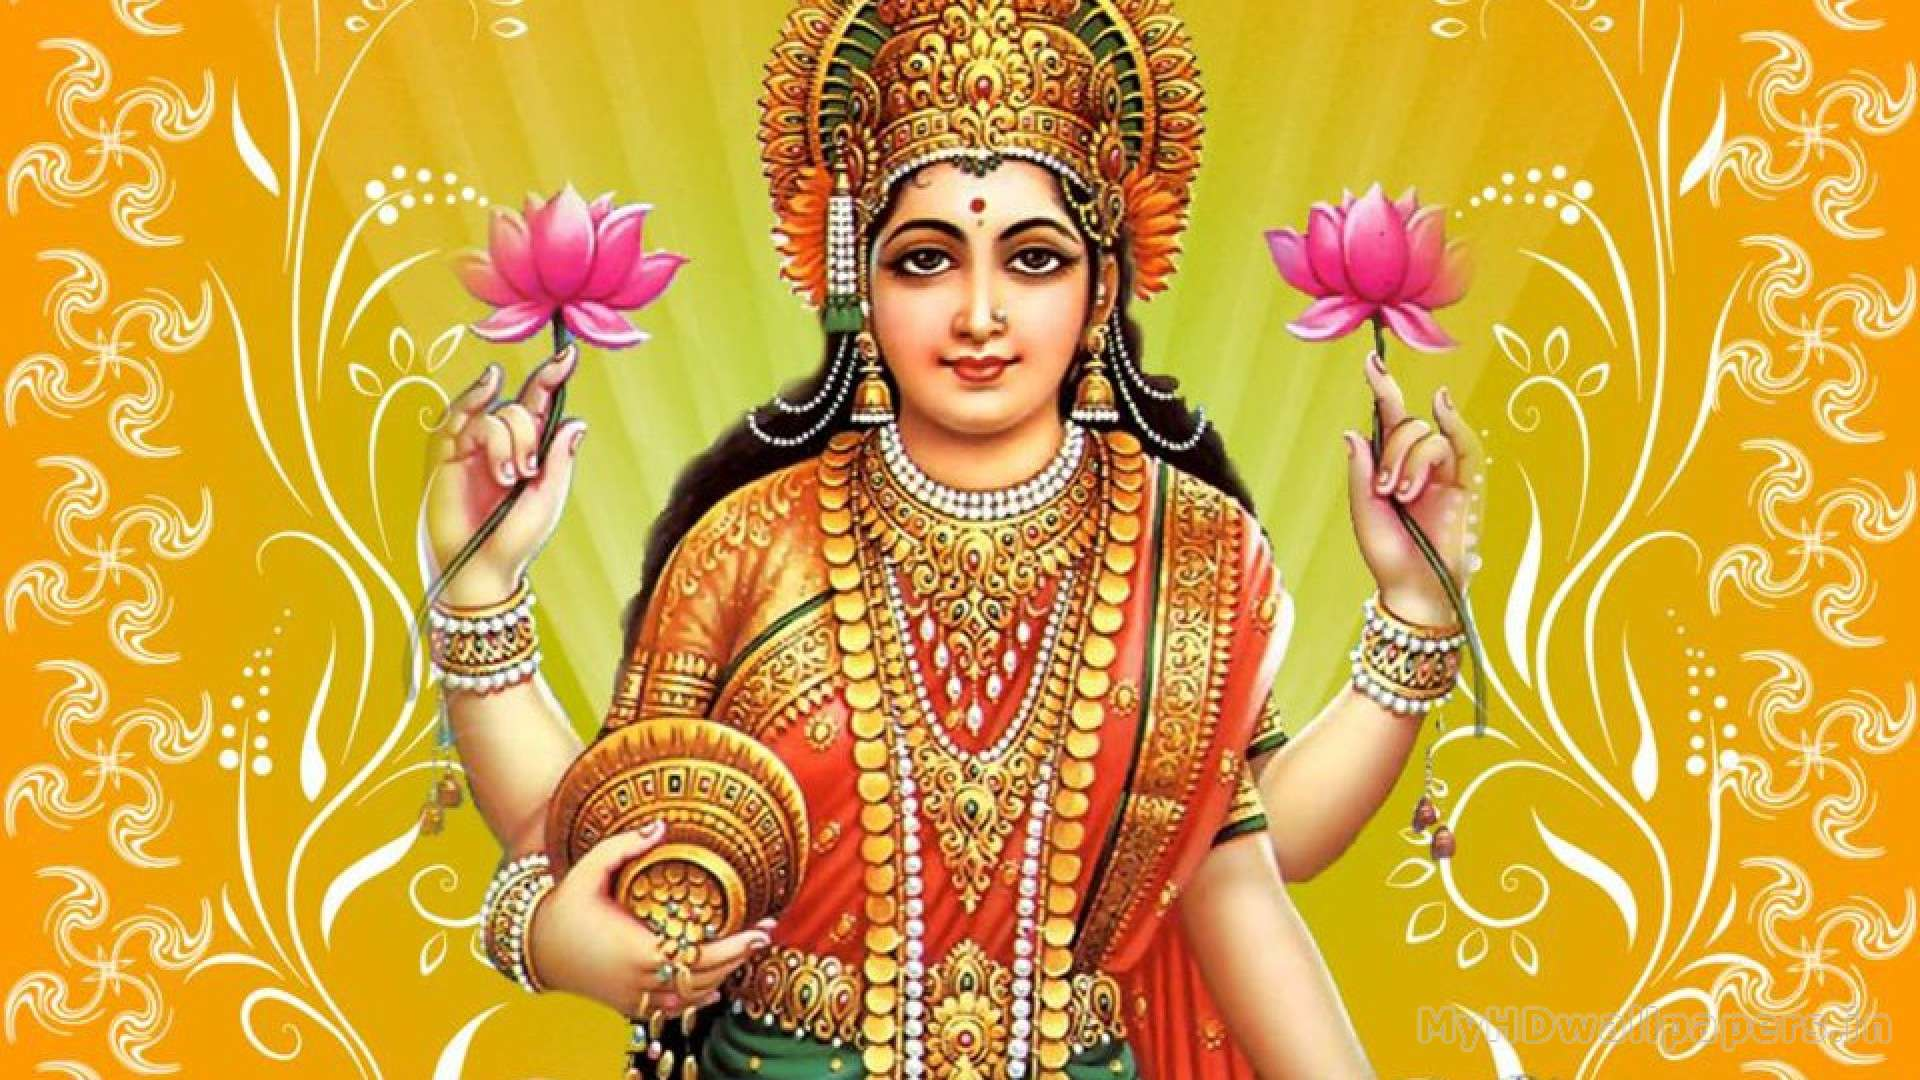 Goddess lakshmi photos high resolution 119 best Special Forces images on Pinterest Soldiers, Special